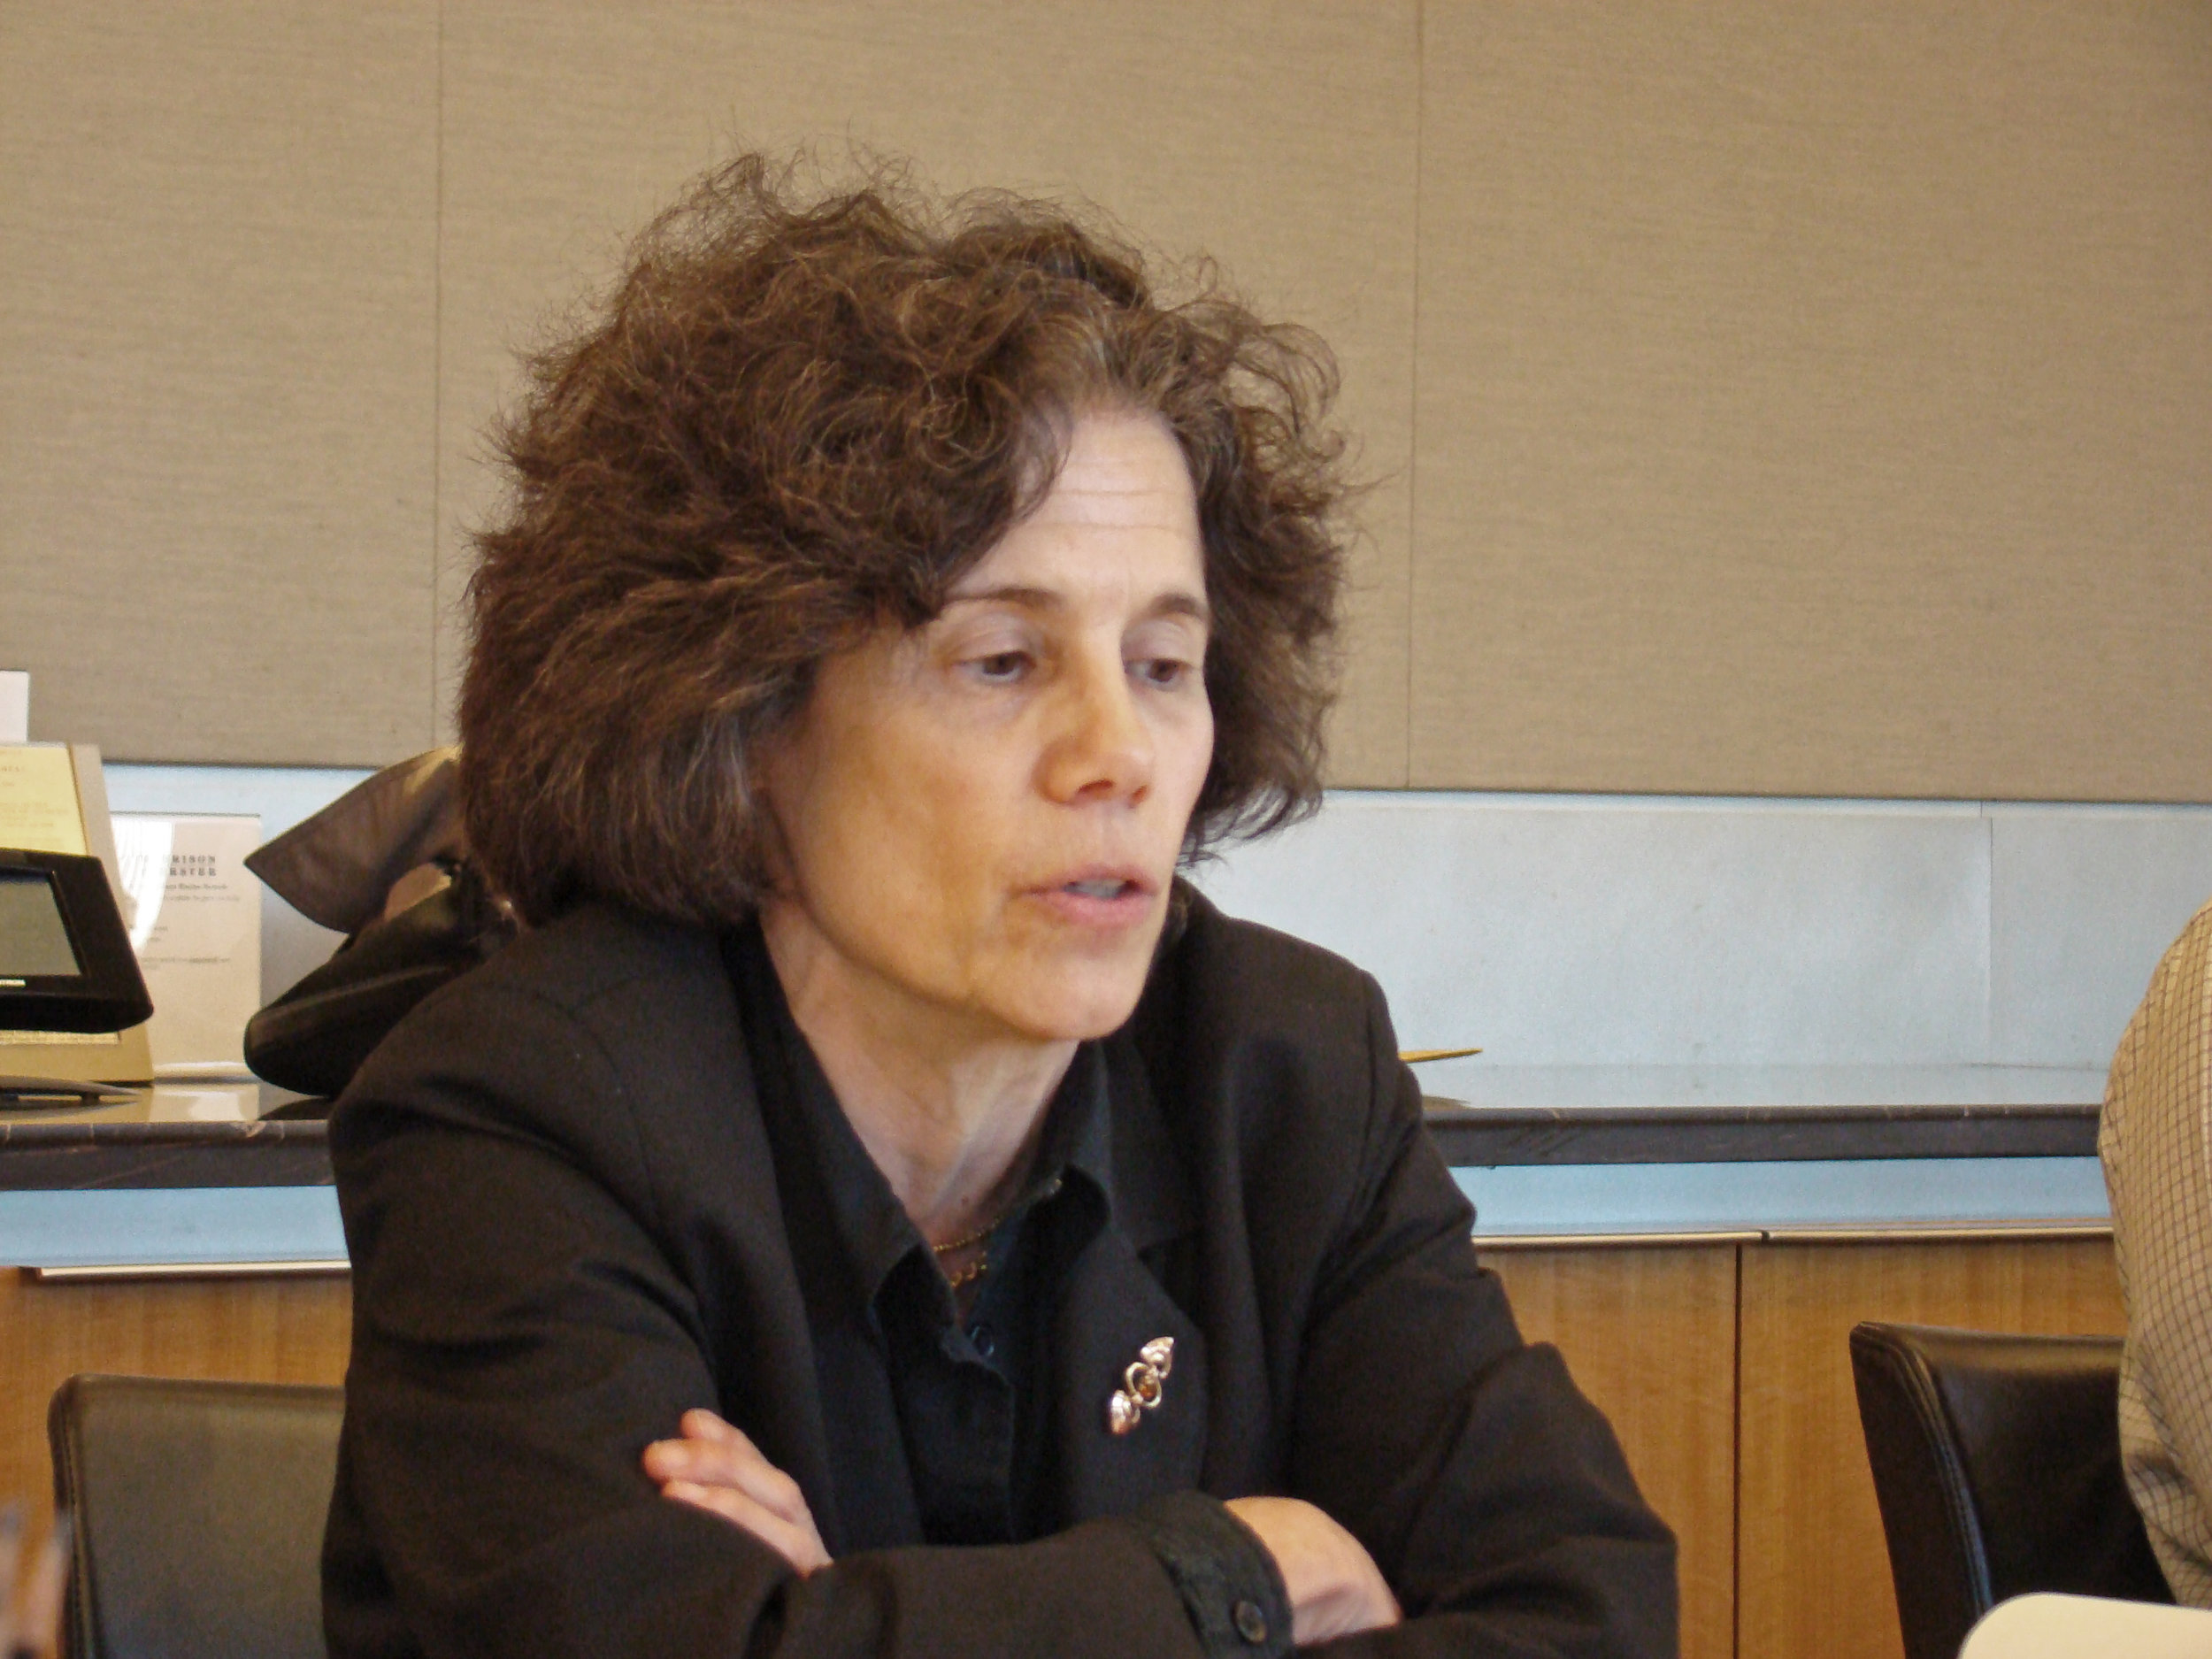 Yale Law School professor, Judith Resnick, leads a seminar on representations of justice.